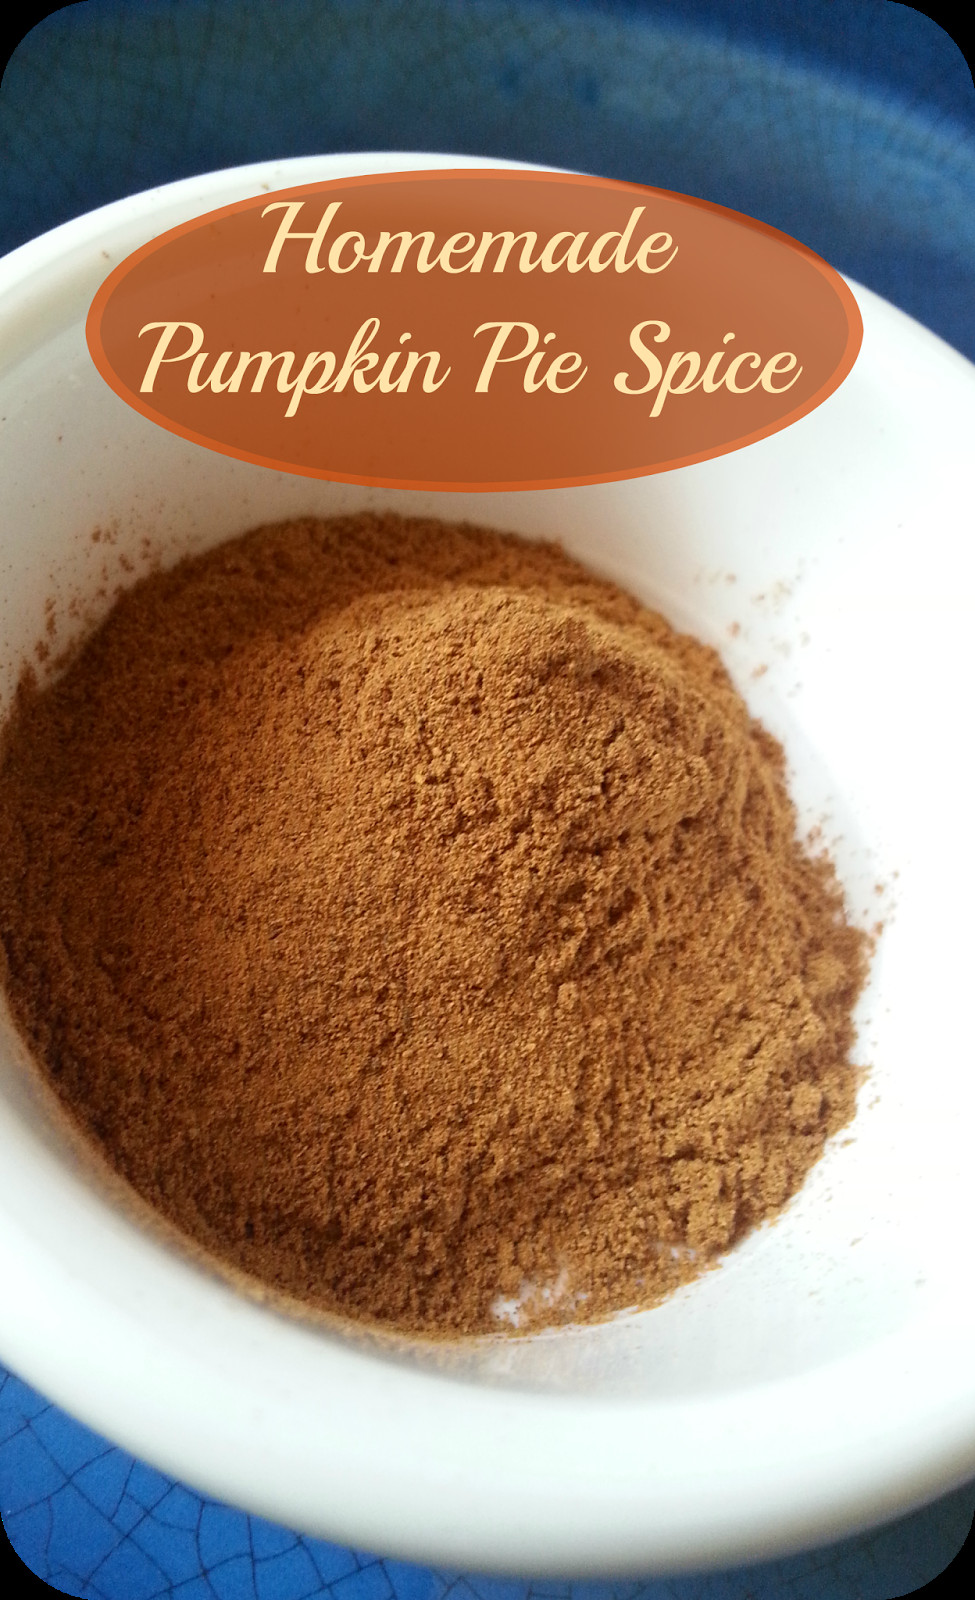 Homemade Pumpkin Pie Spice  The Better Baker Homemade Pumpkin Pie Spice & Apple Pie Spice